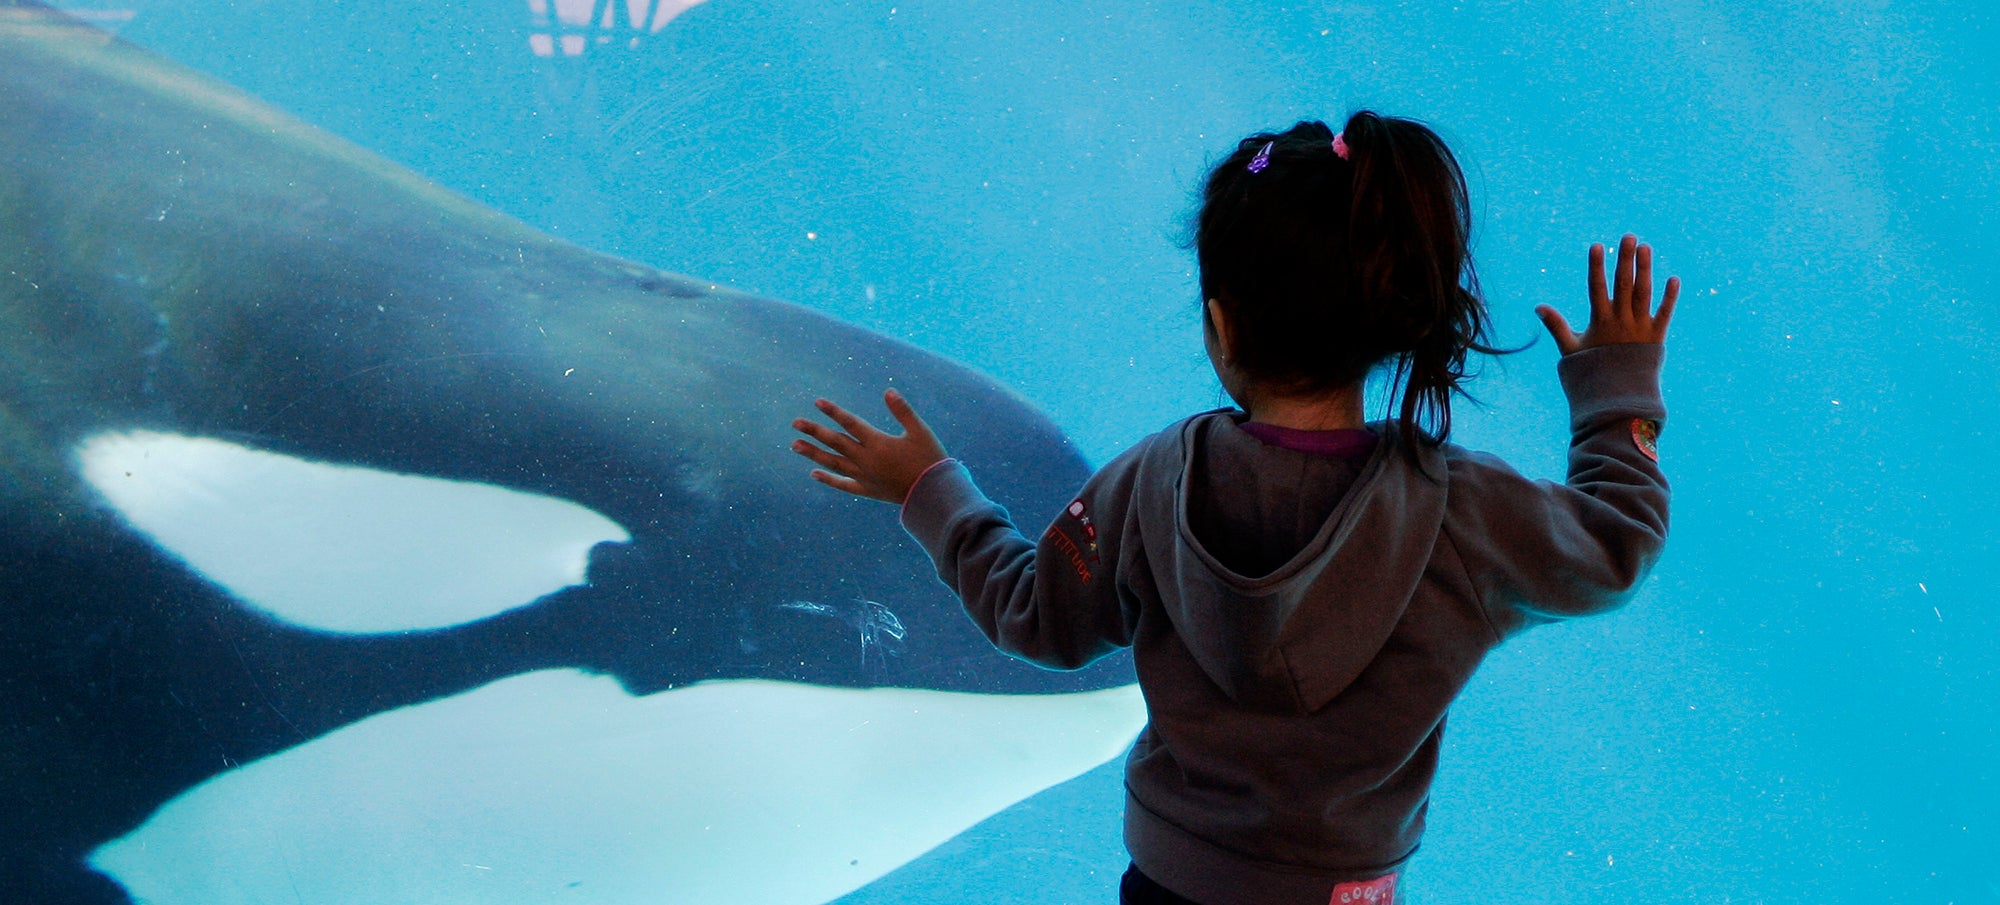 SeaWorld Will Finally Stop Using Killer Whales... After Just a Few More Years of Exploitation